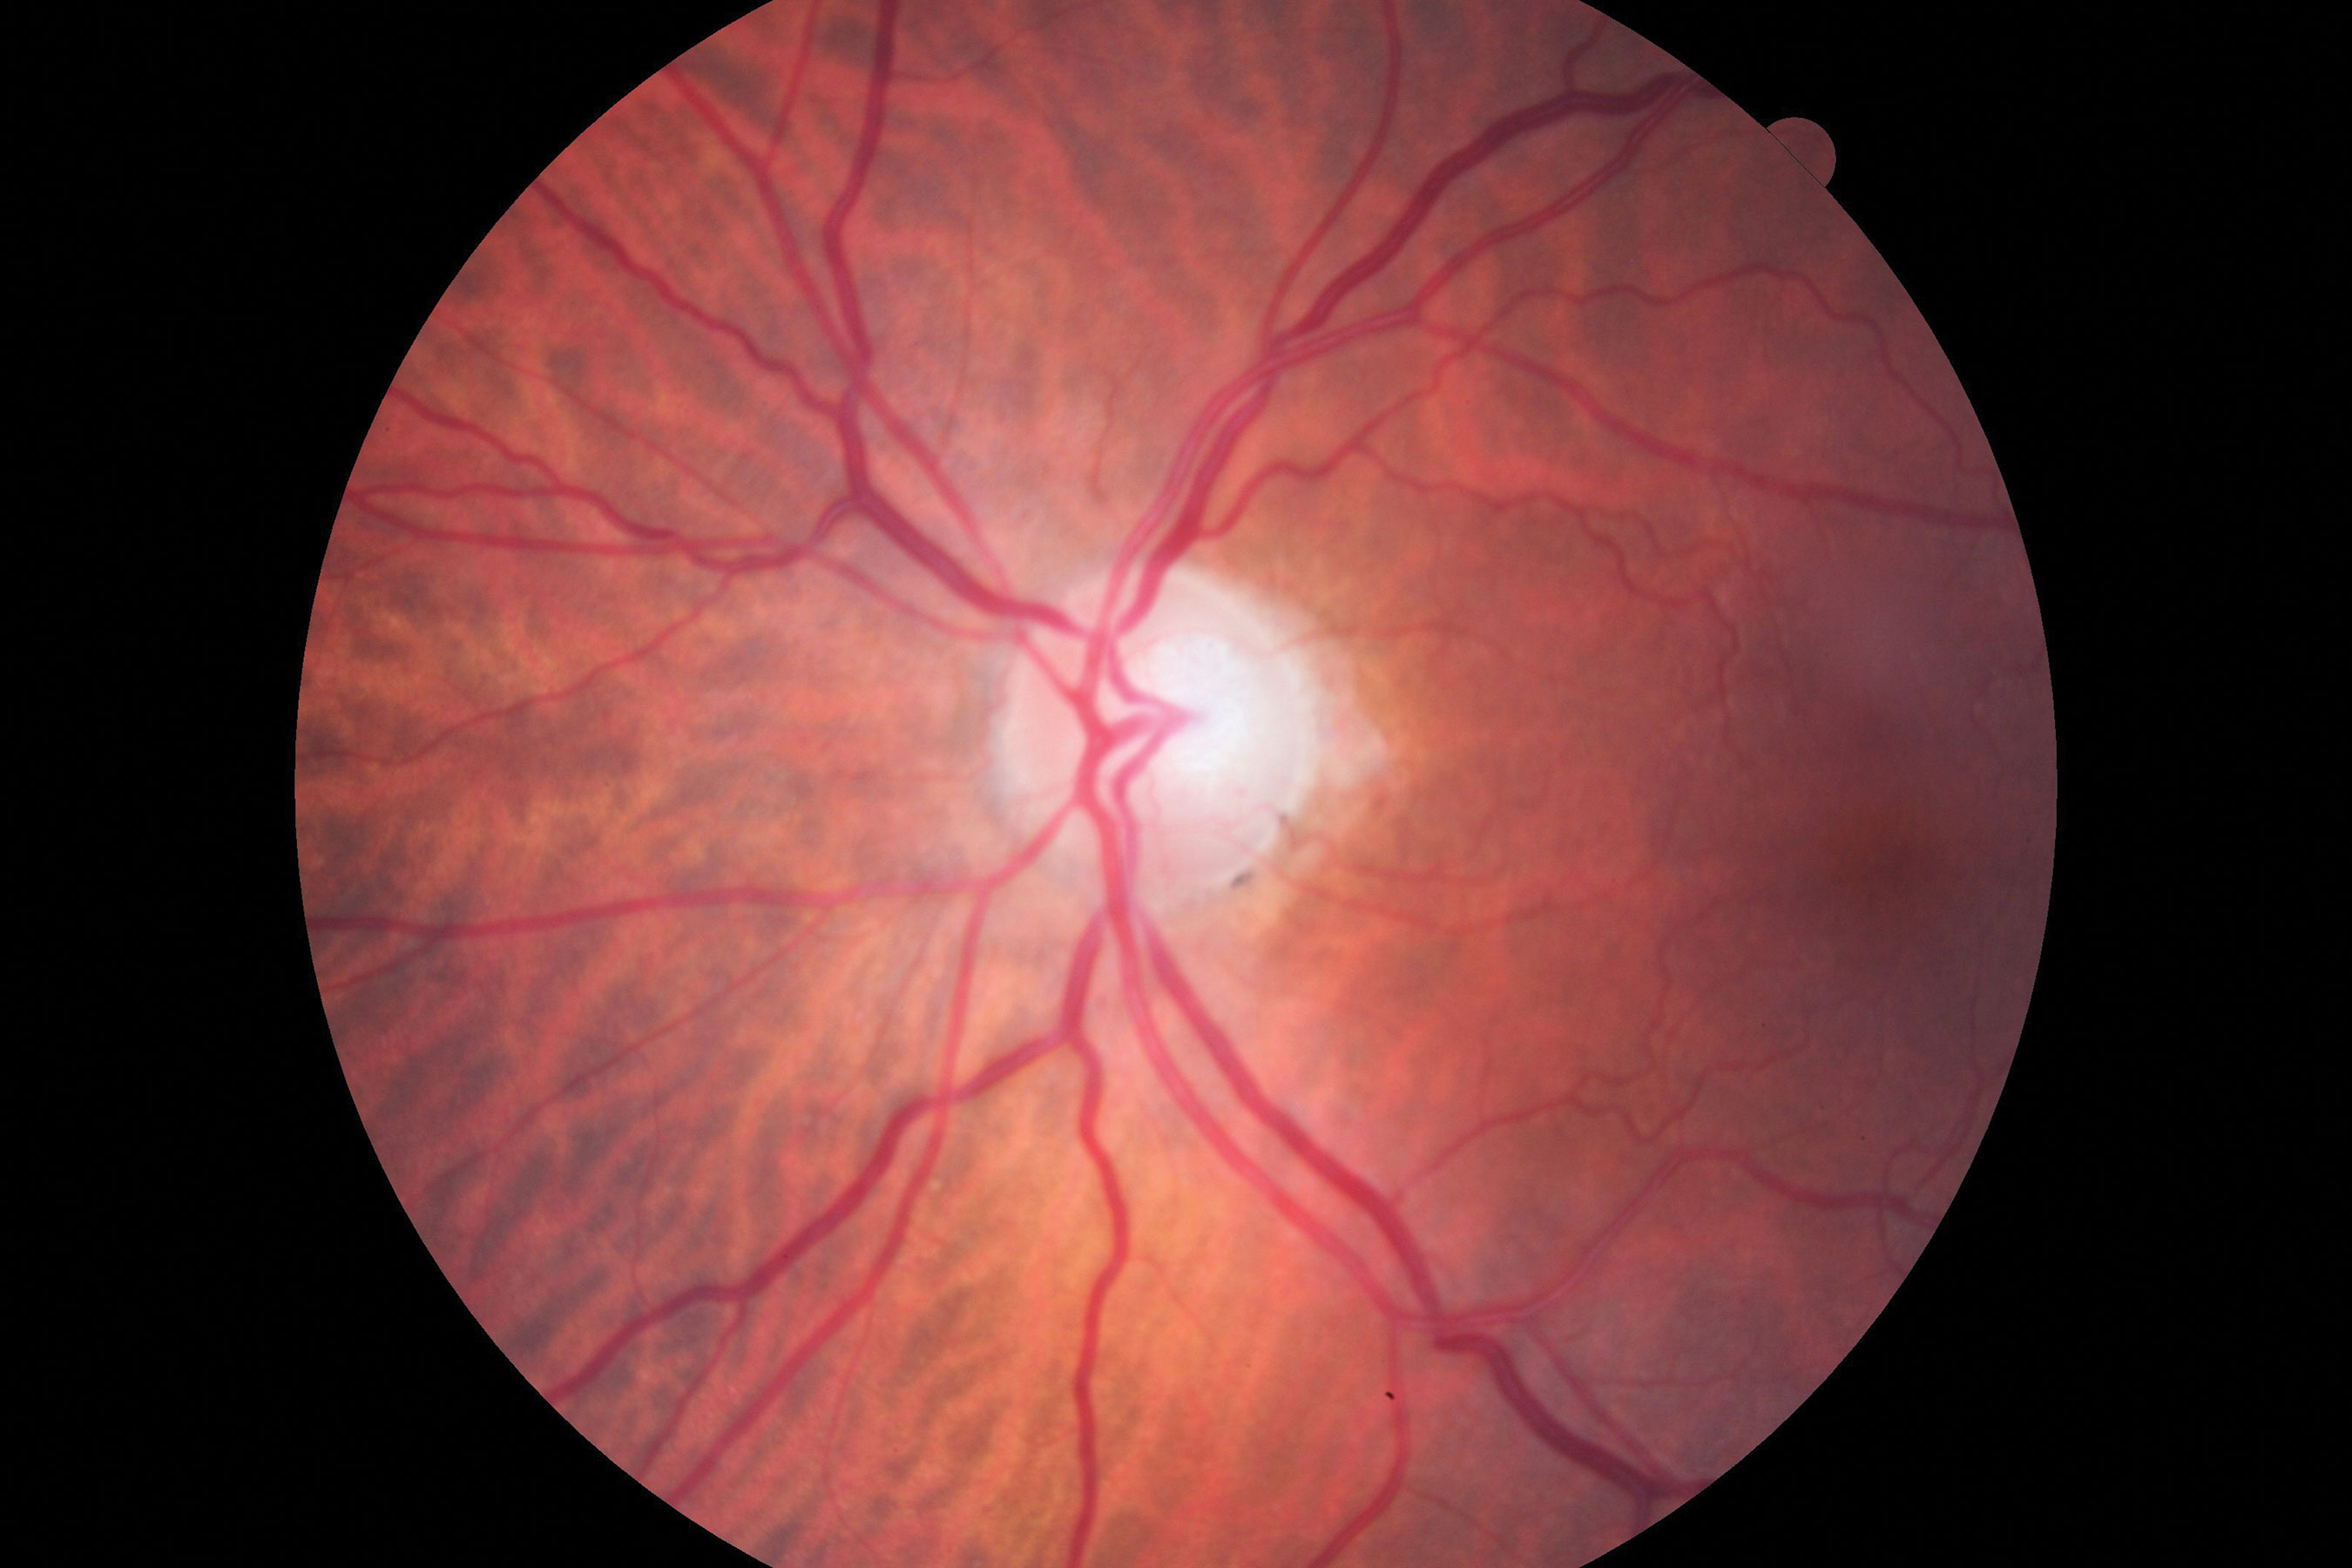 Fig. 1. Visible in this patient's optic disc is a temporal pallor with numerous arterial constrictions and a/v nicking.